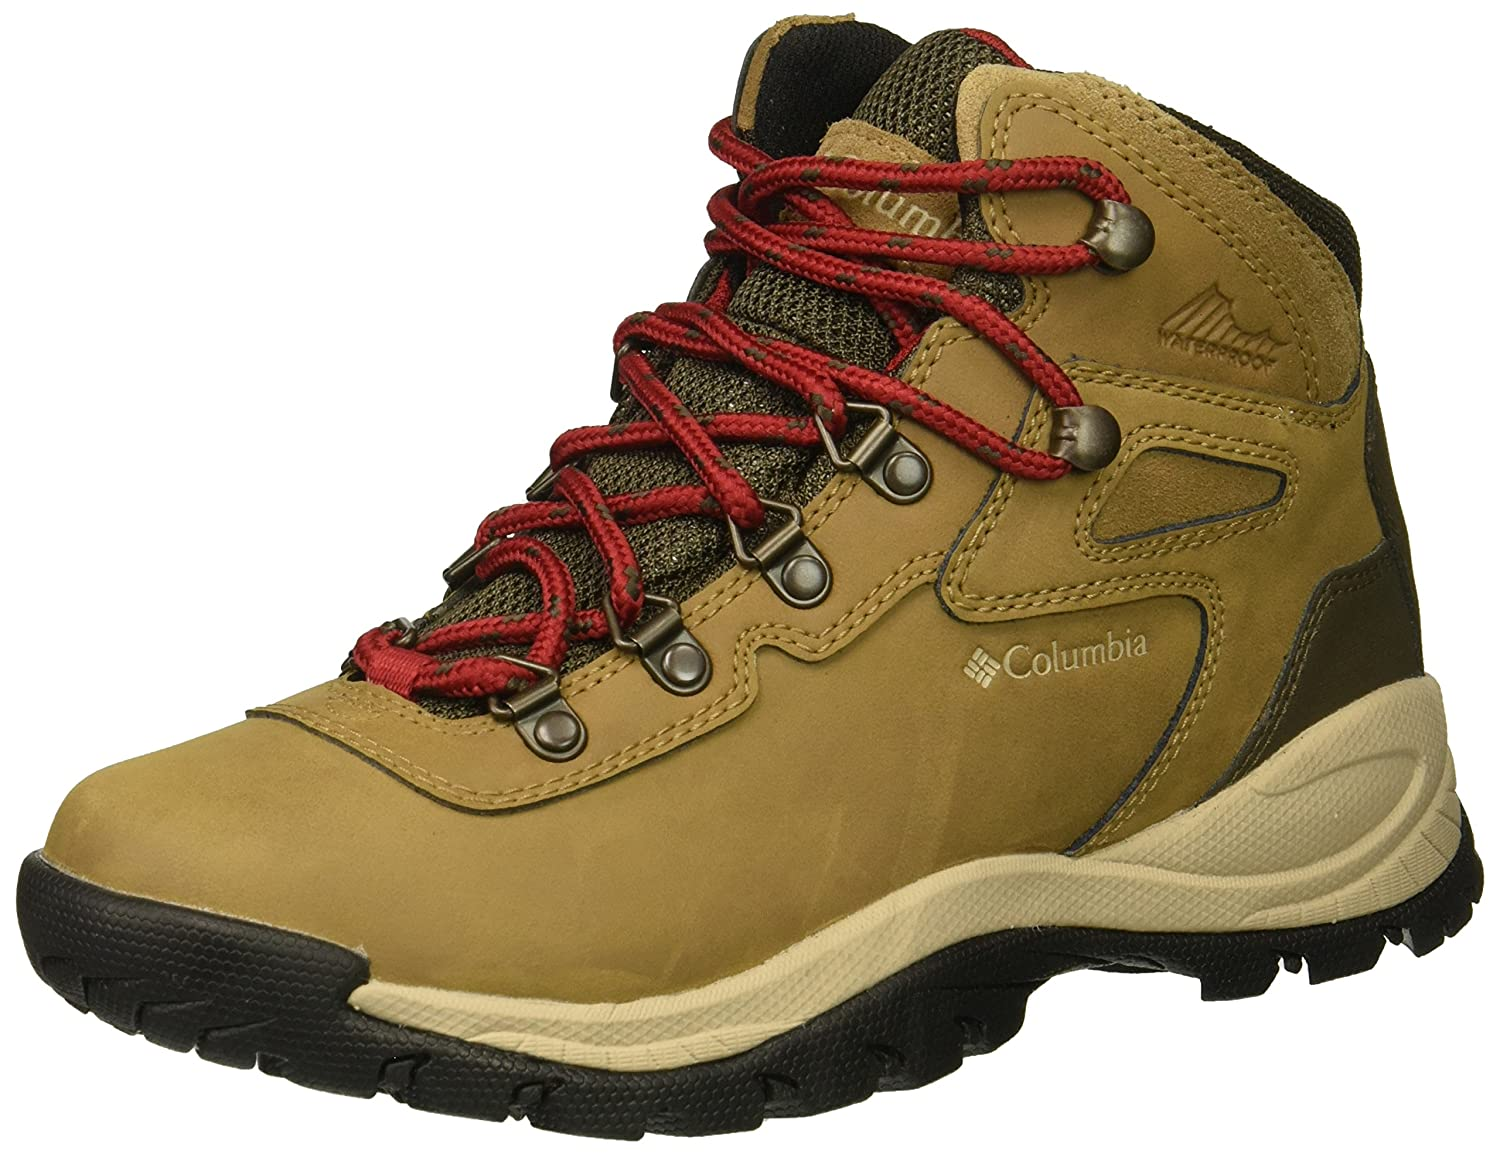 Columbia Women's Newton Ridge Plus Wide Hiking Shoe B0787F4HNS 7 W US|Delta, Red Velvet